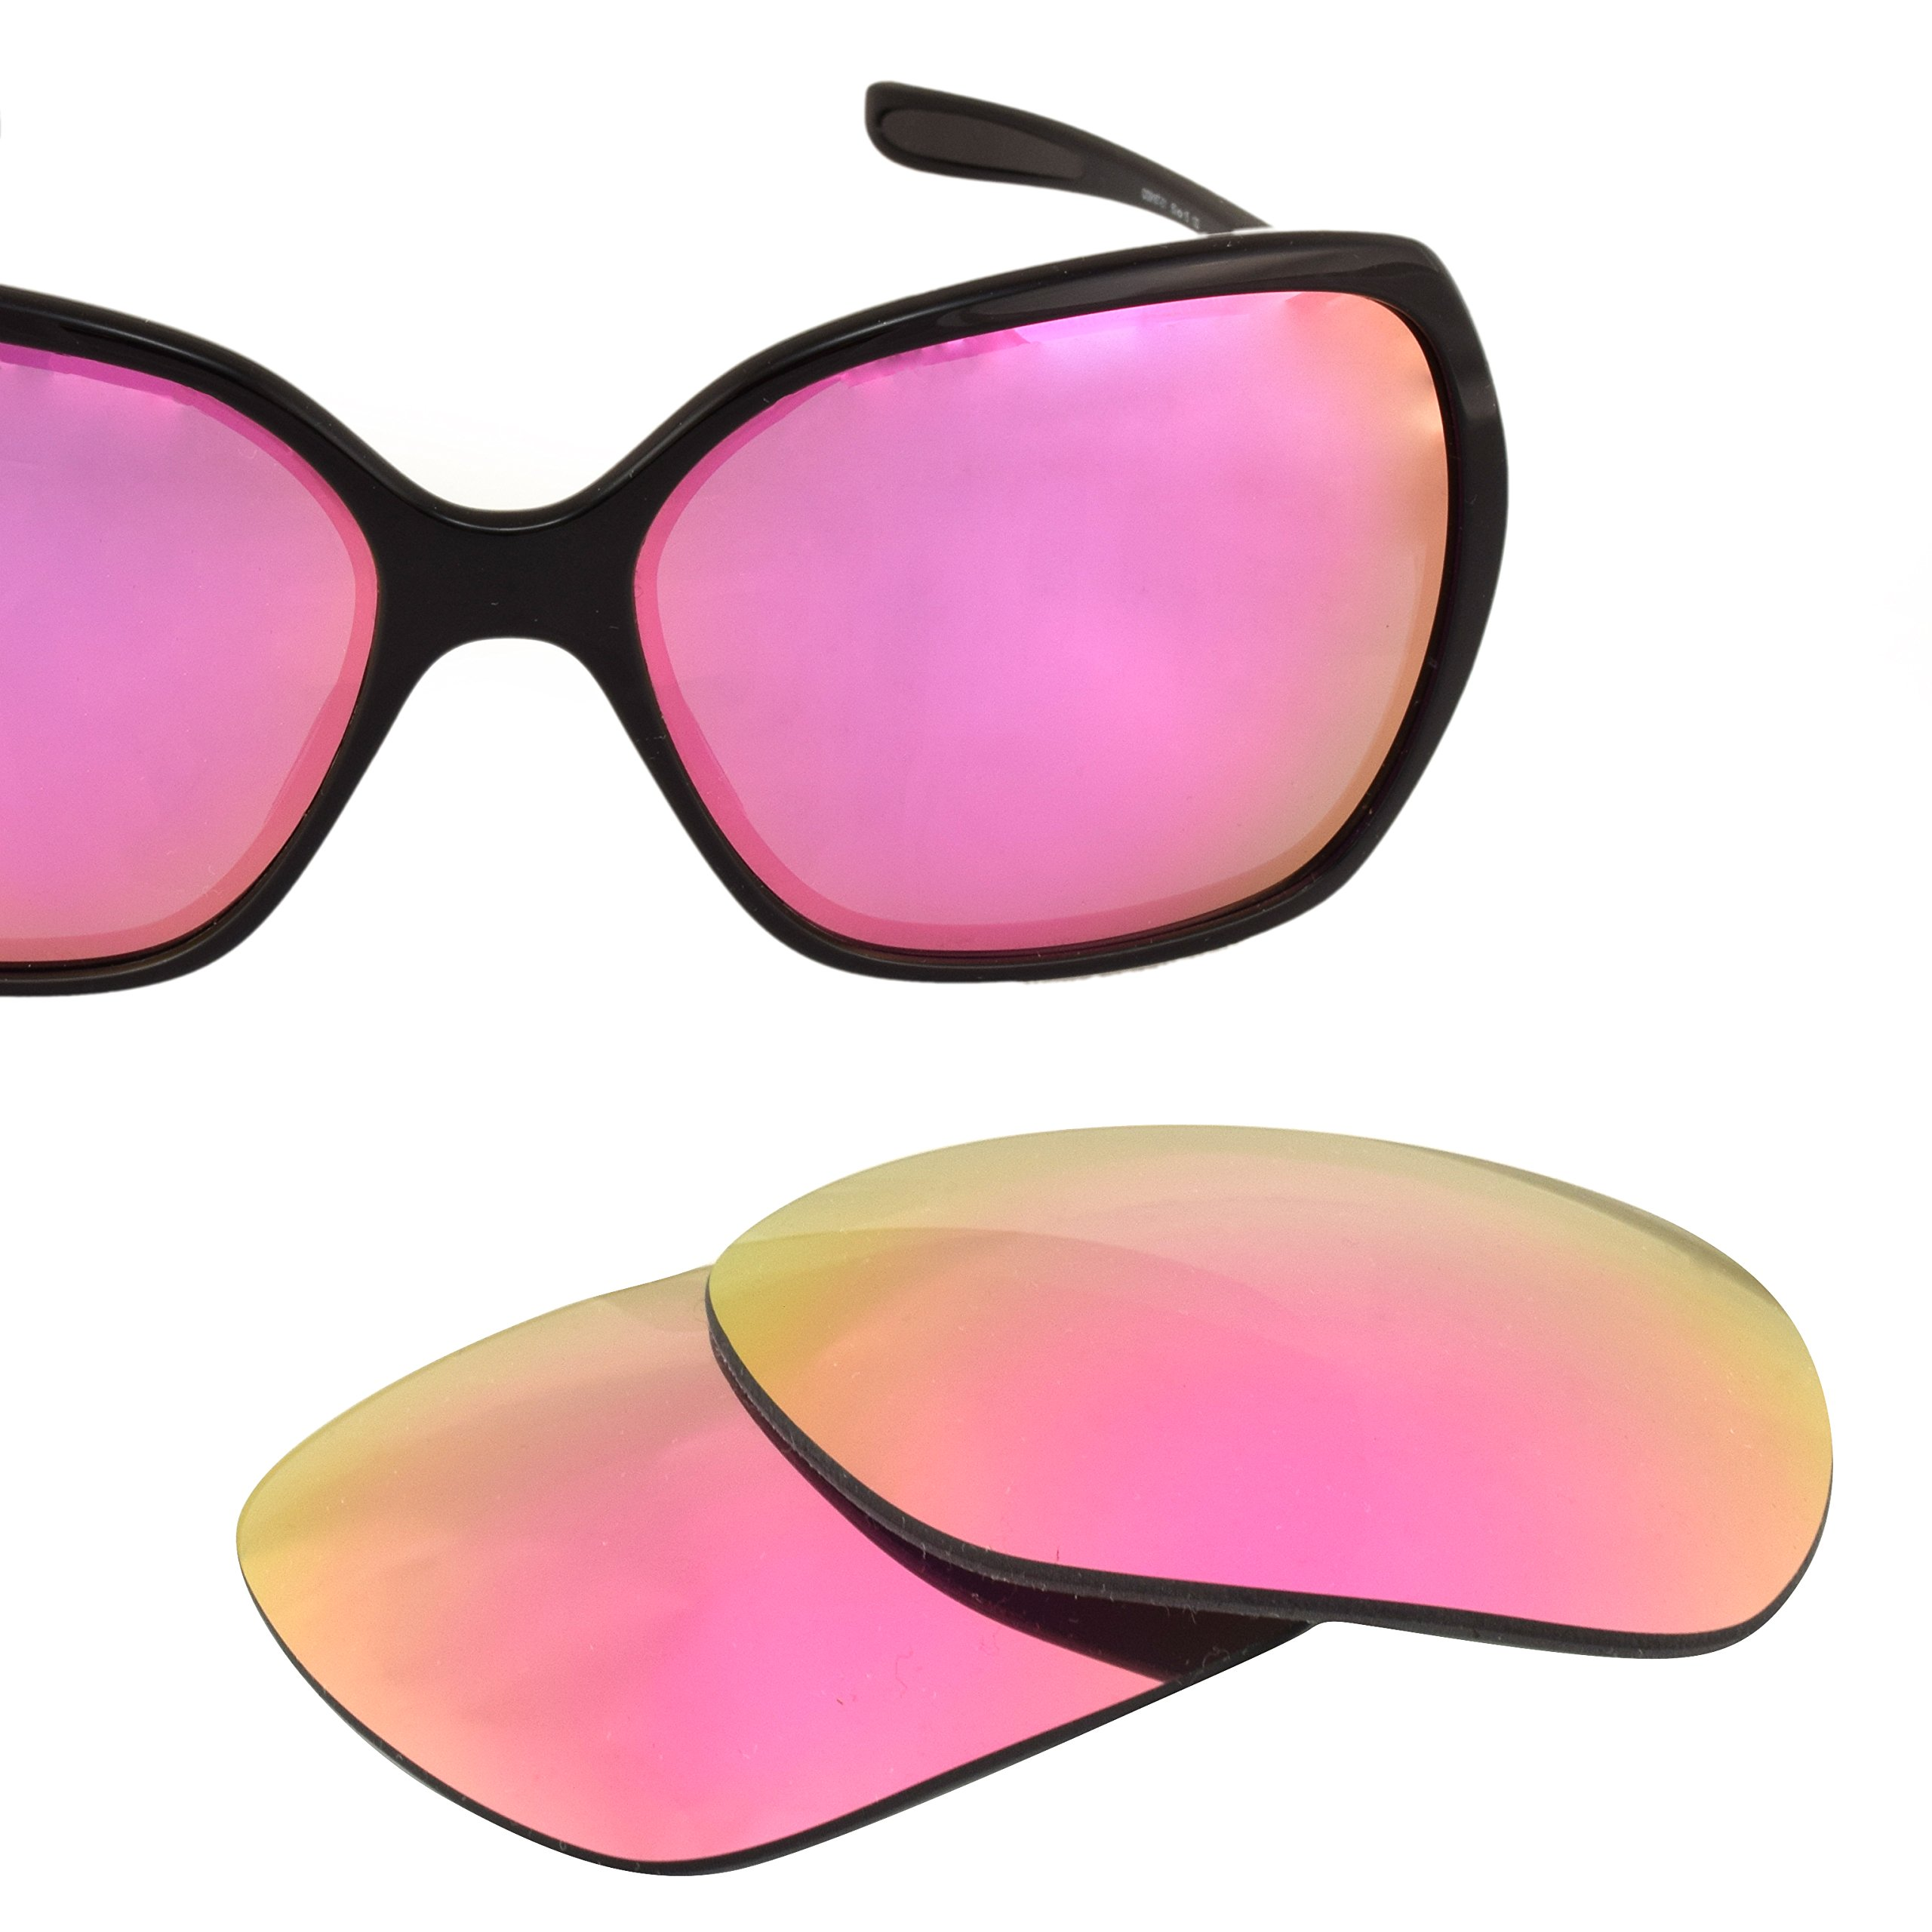 00dbfb9d389 Galleon - LenzFlip Replacement Lenses For Oakley Overtime